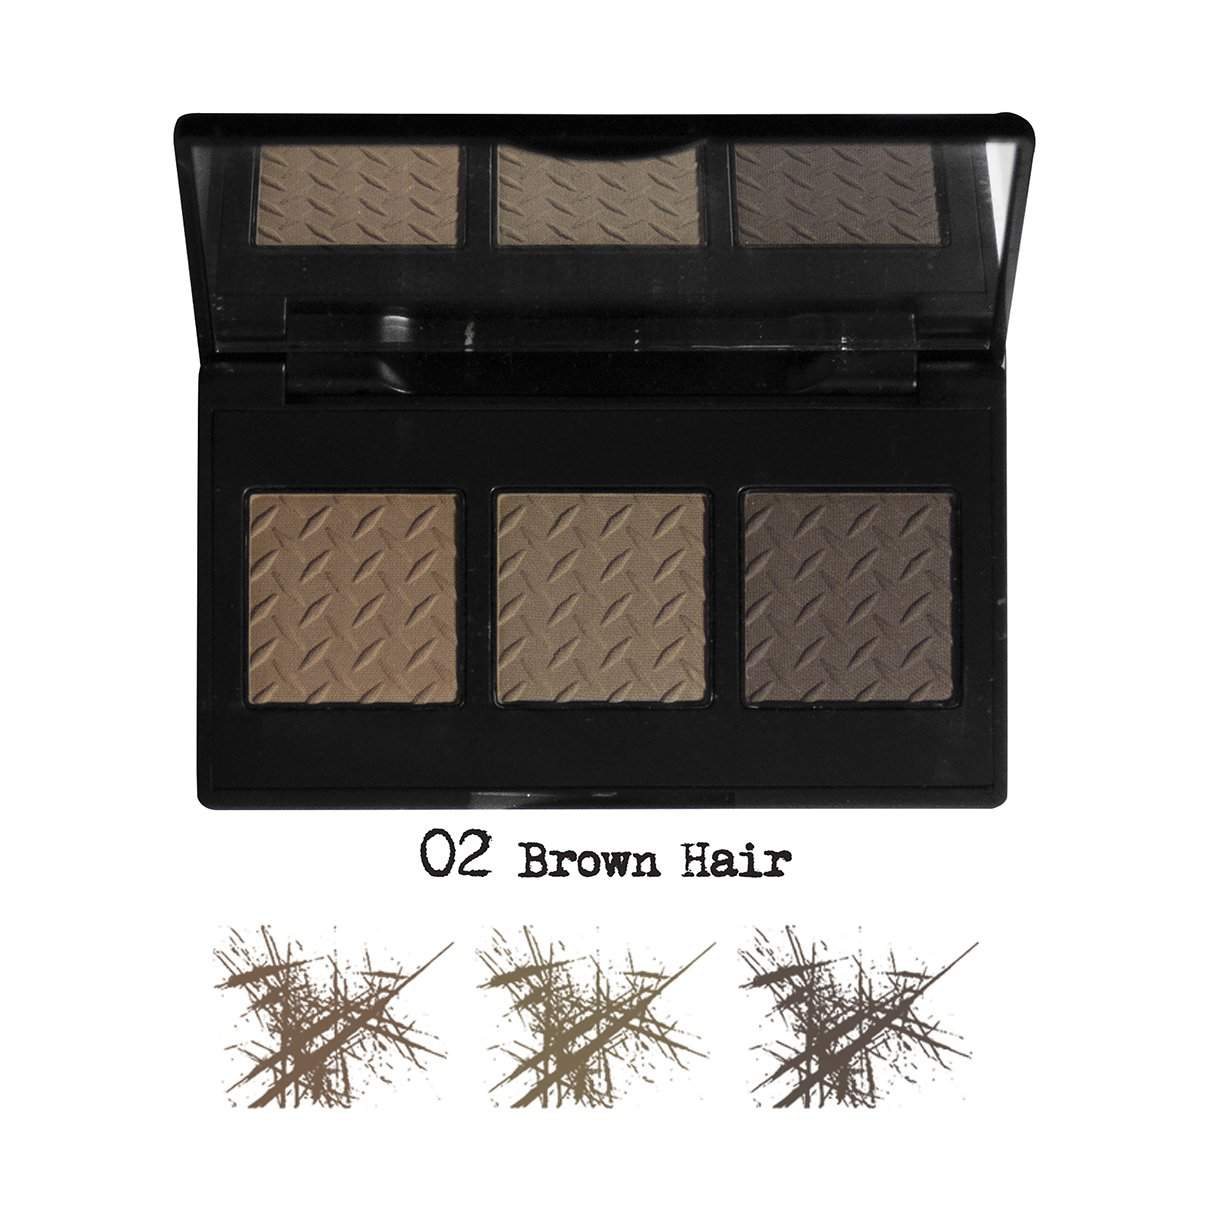 Convertible Brow - Powder,The Browgal - NL